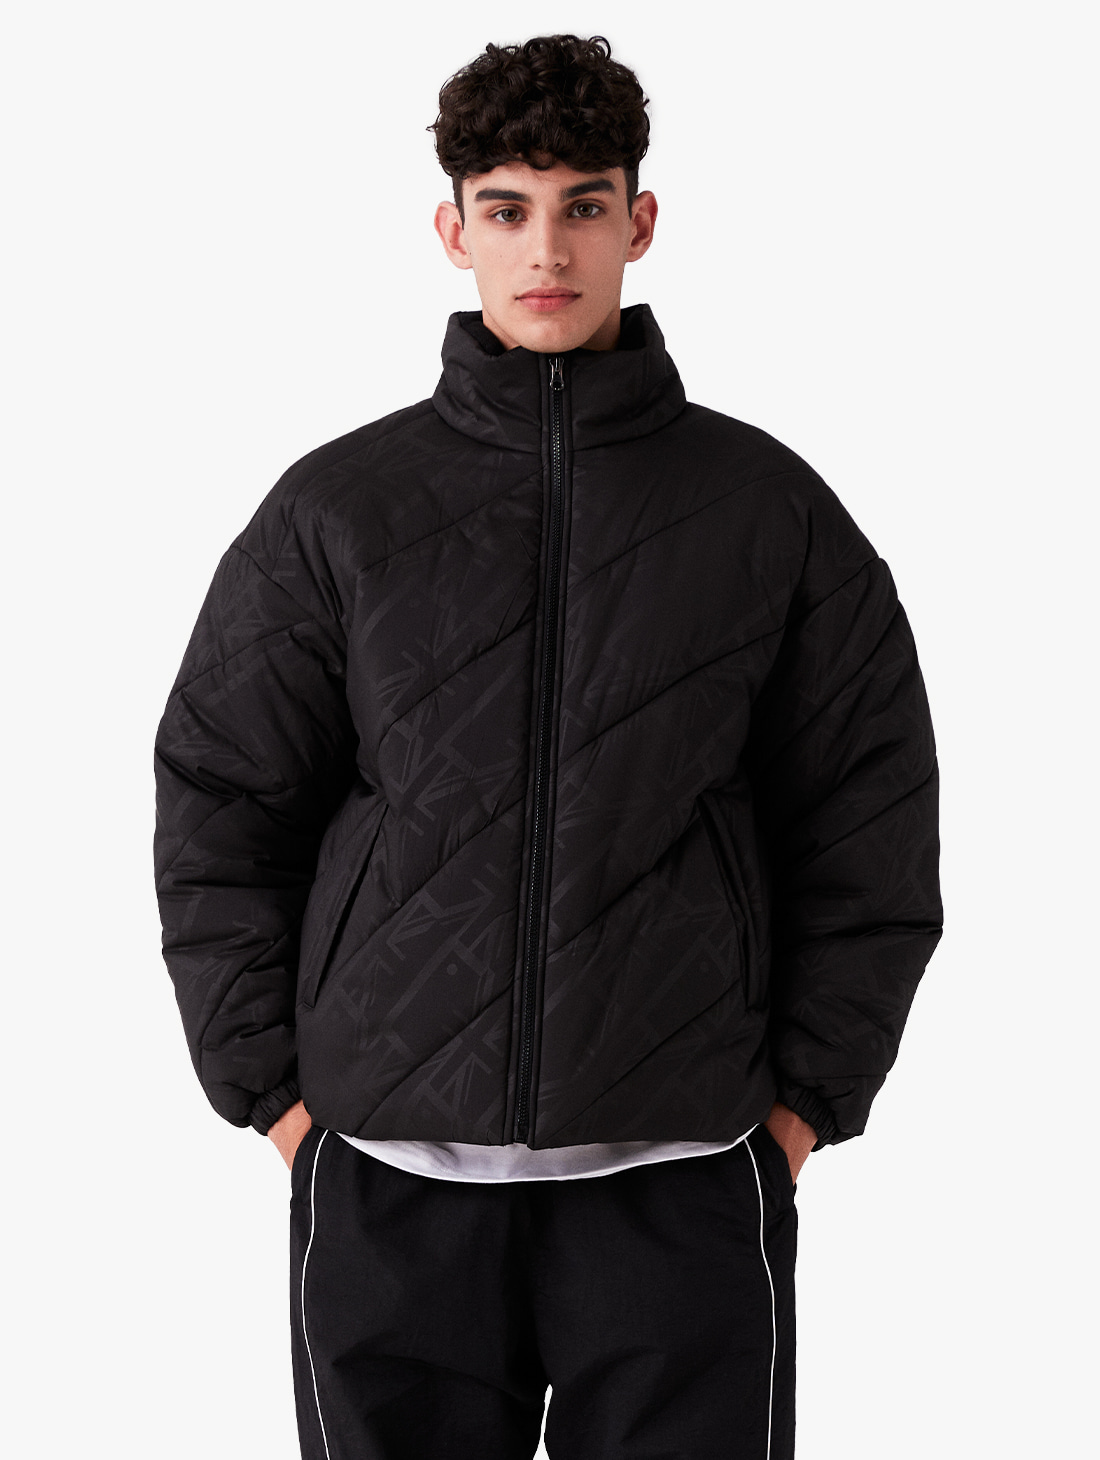 GOALSTUDIO (Sold Out) WWFC DIAGONAL EMBO PADDED JACKET